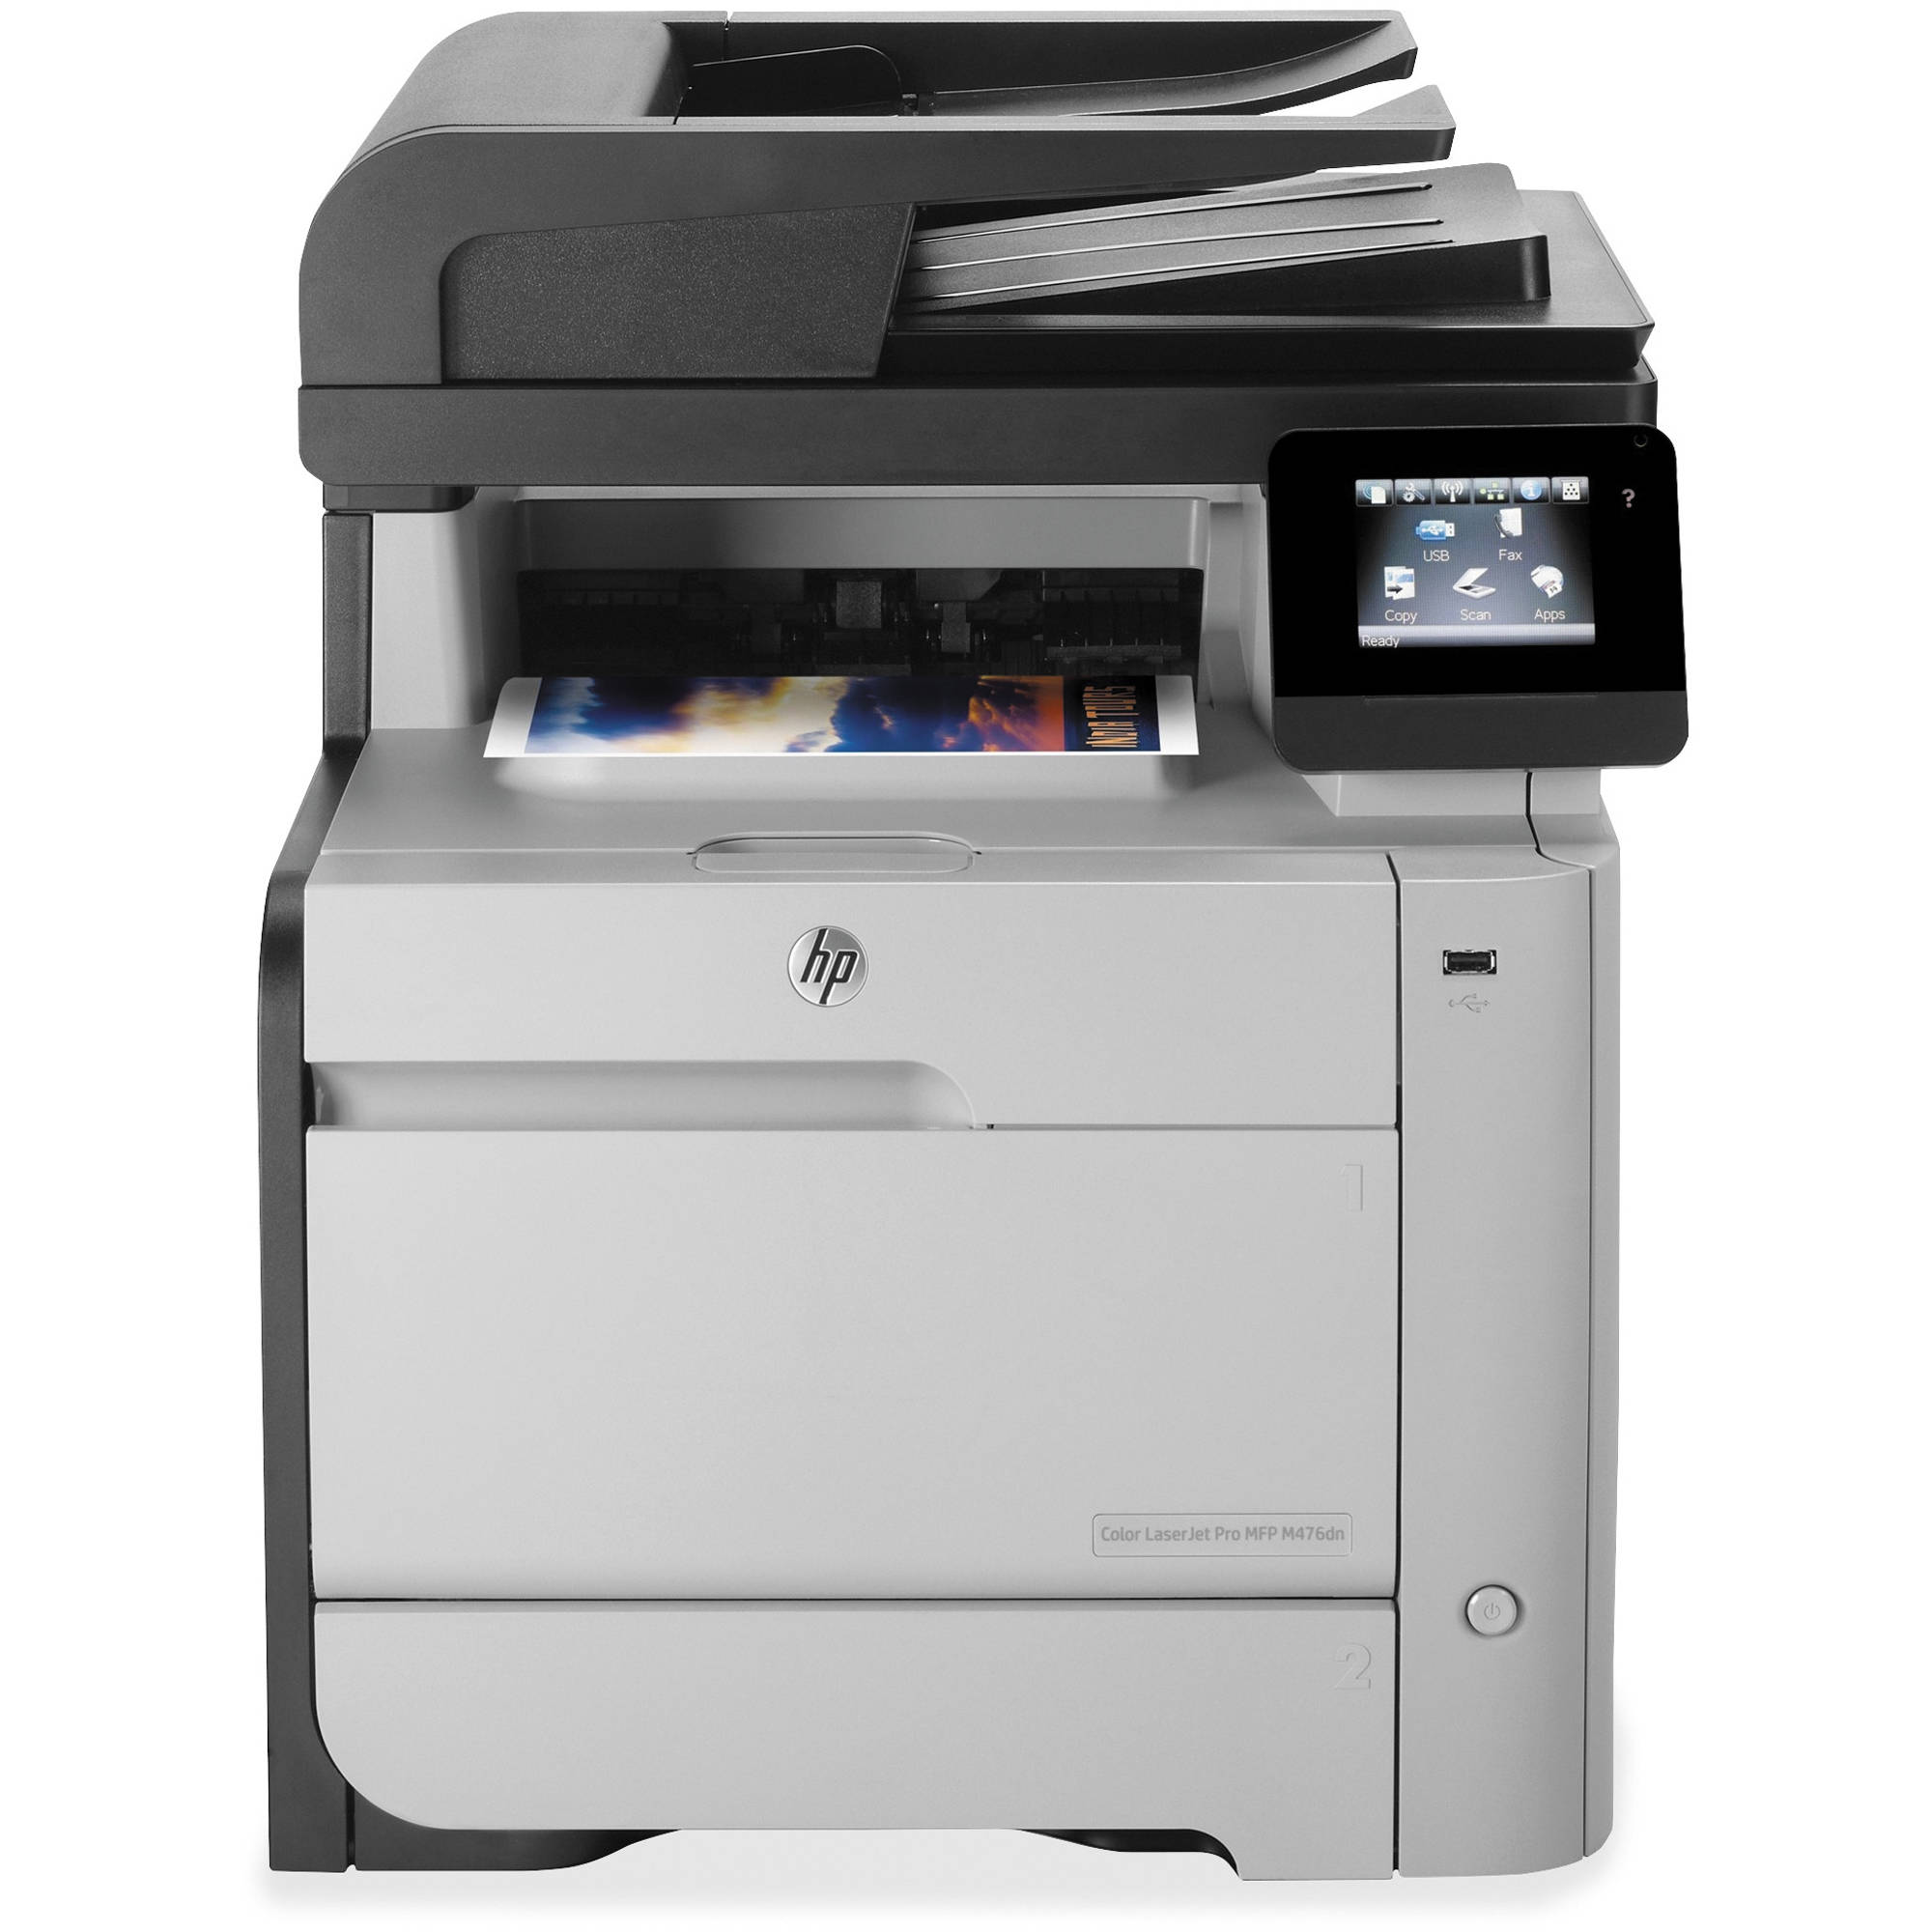 Hp m476dn laserjet pro all in one color laser printer